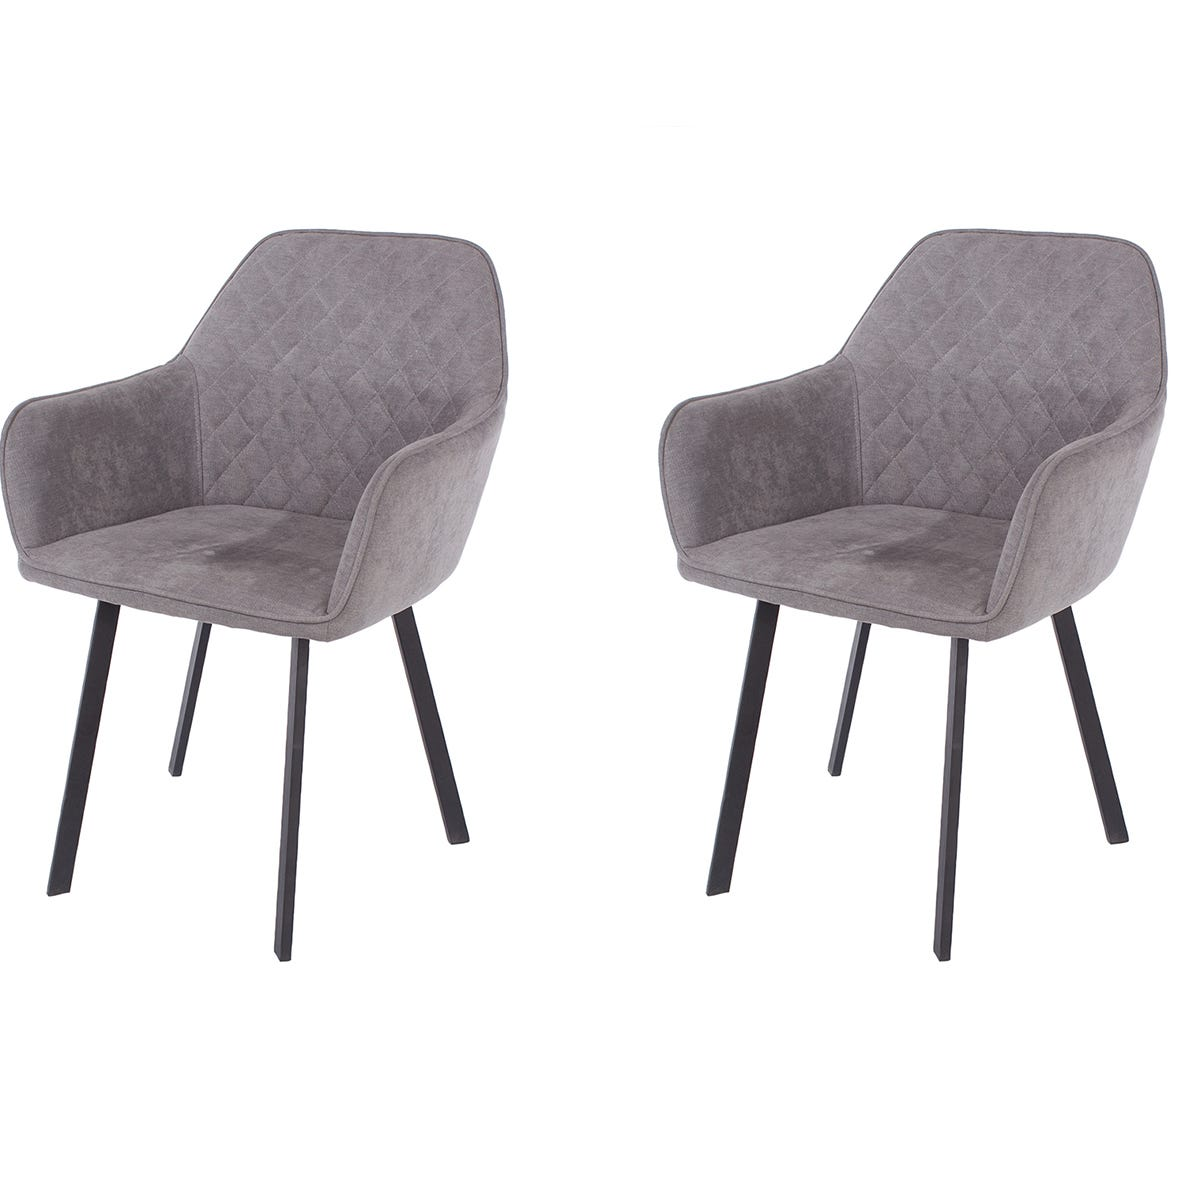 Aspen Grey Fabric Upholstered Armchairs With Black Metal Legs (Pair)